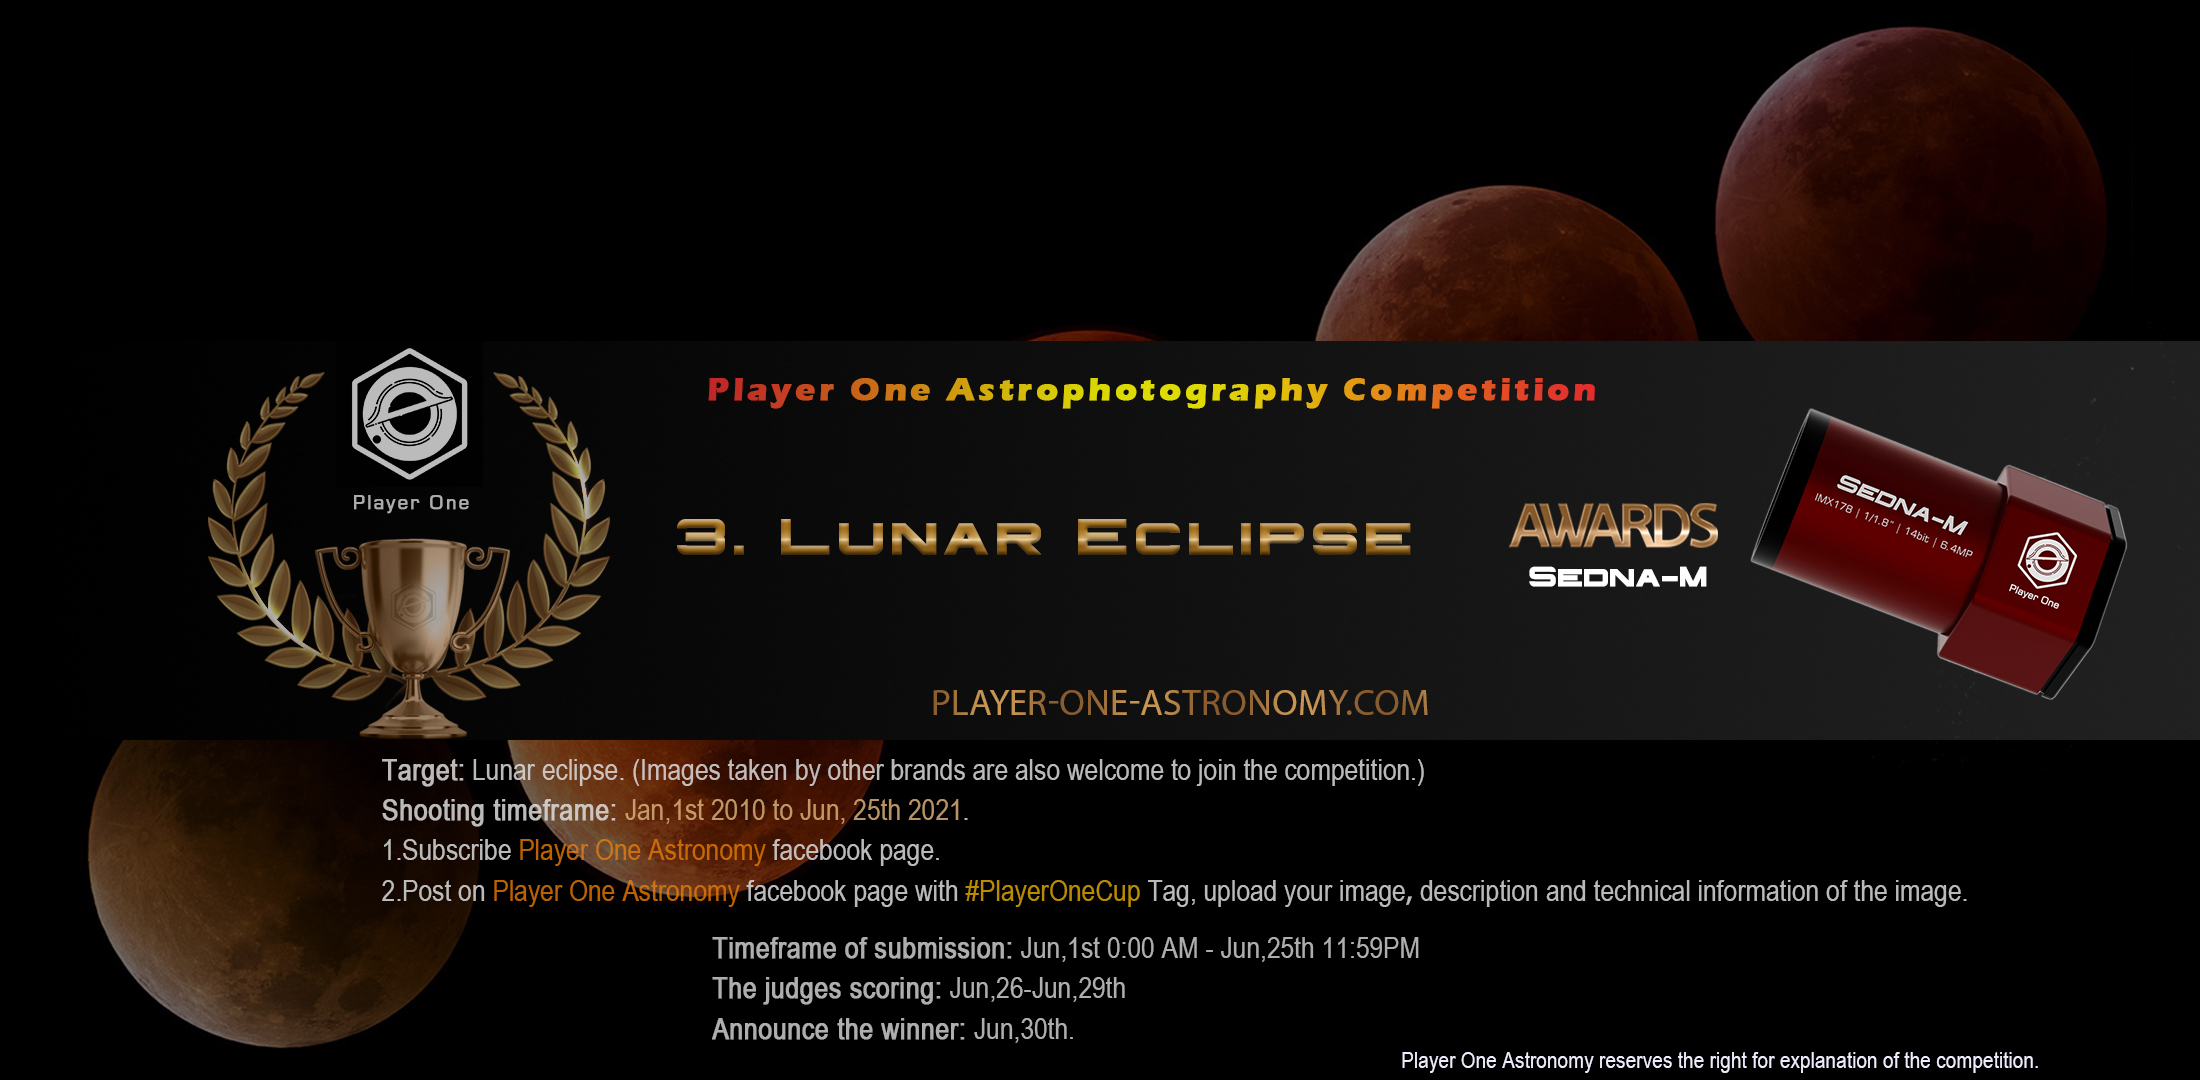 Player One Astrophotography Competition Round 3: Lunar eclipse